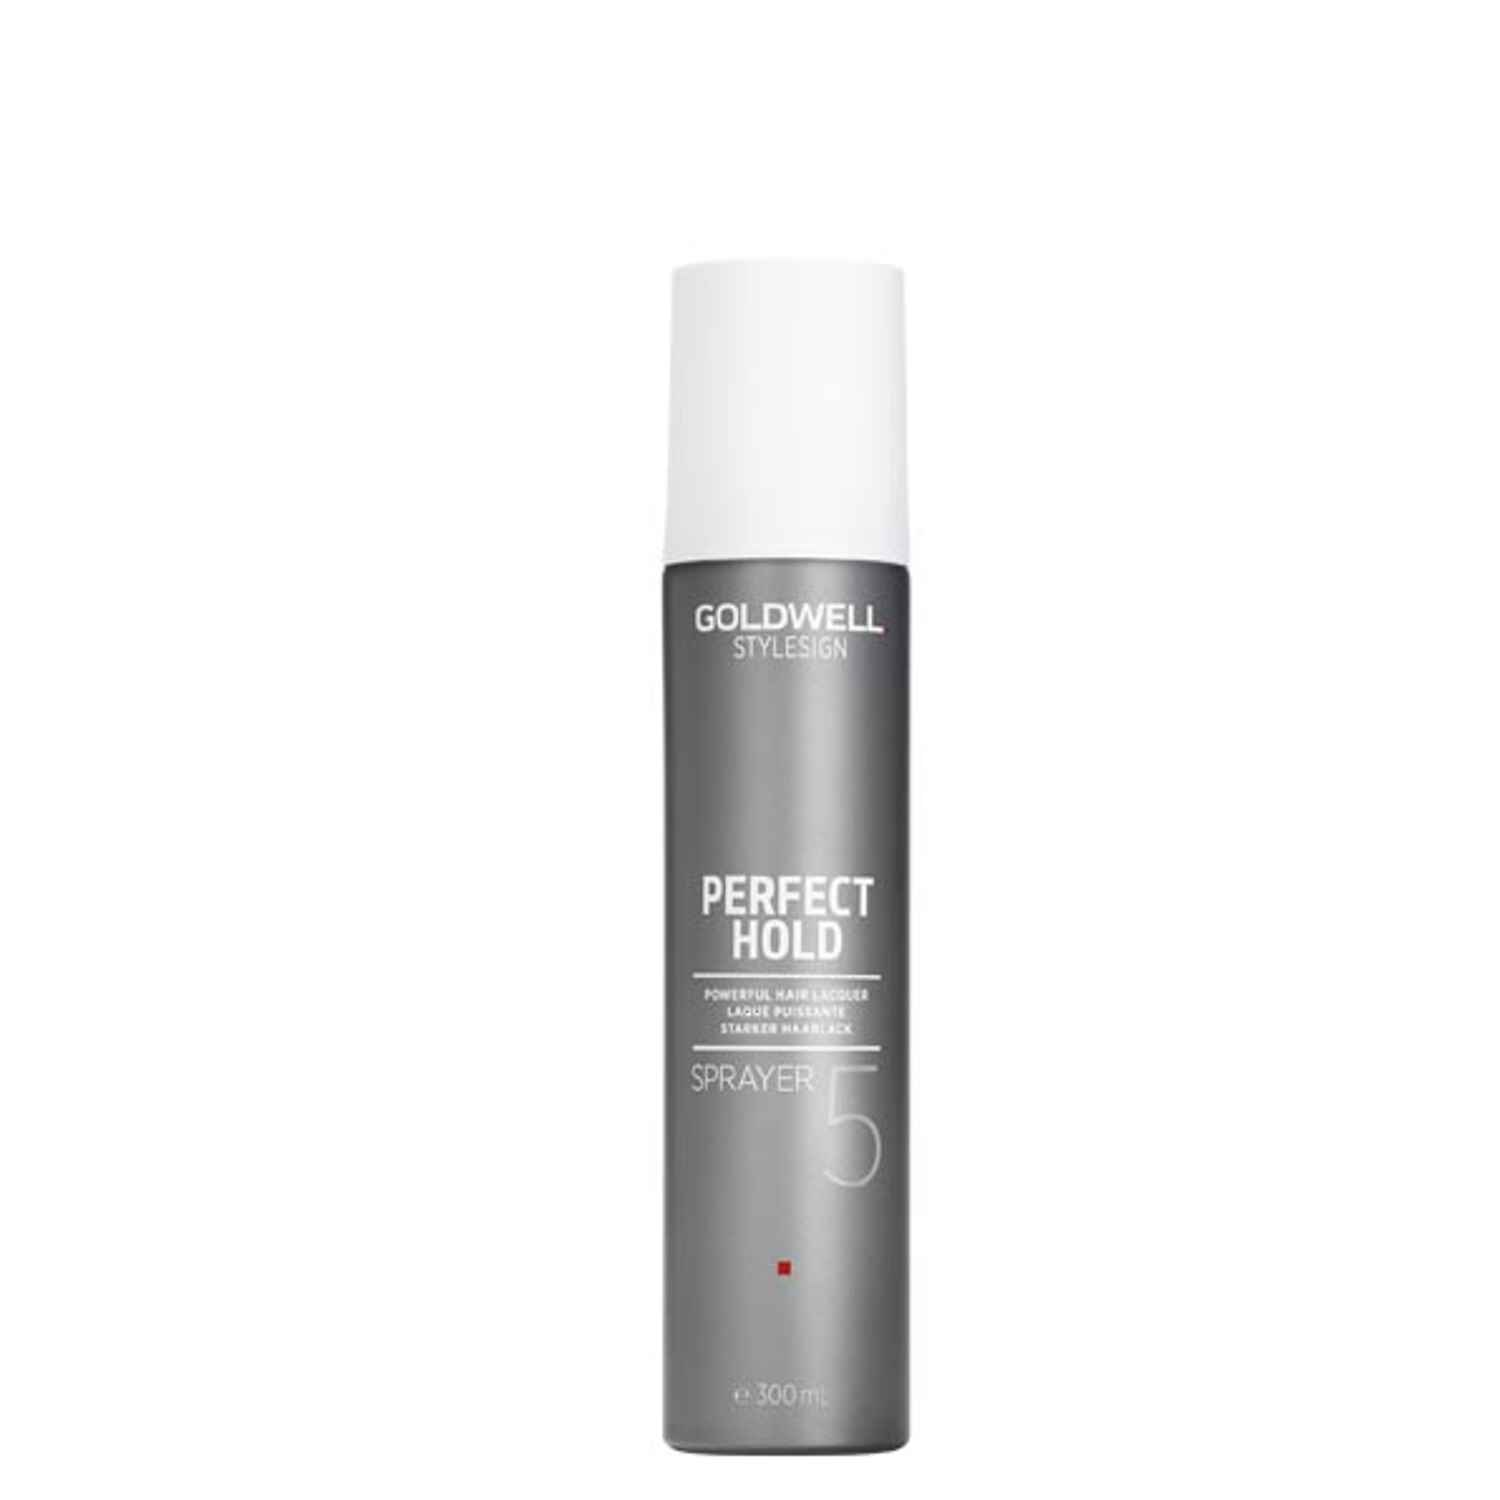 GOLDWELL Style Sign Perfect Hold SPRAYER 300 ml